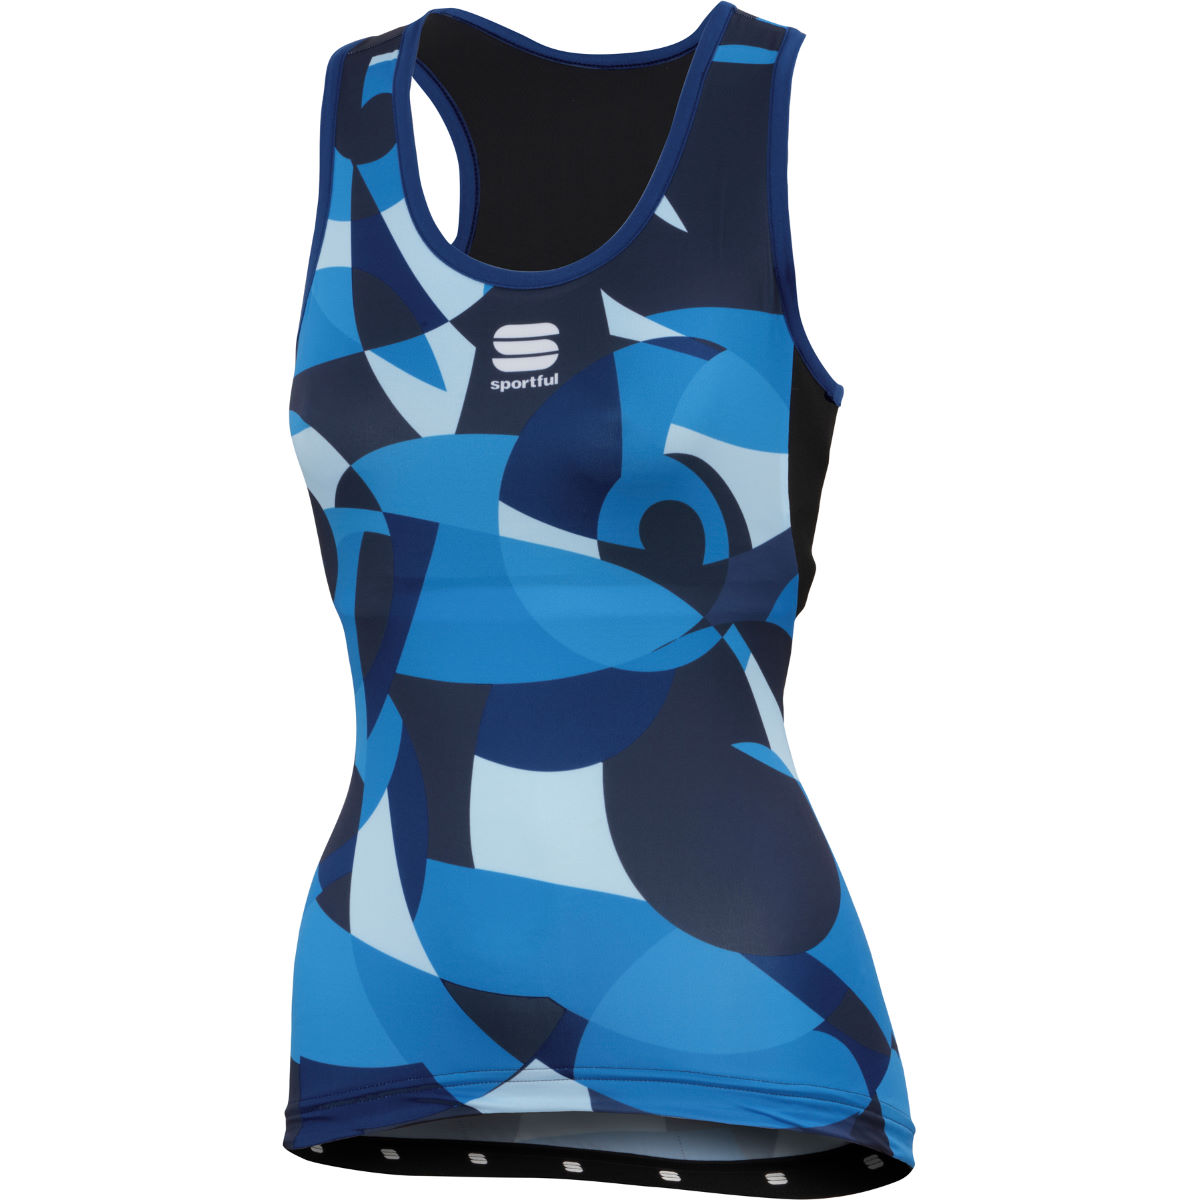 Maillot Femme Sportful Primavera (sans manches) - XS Maillots